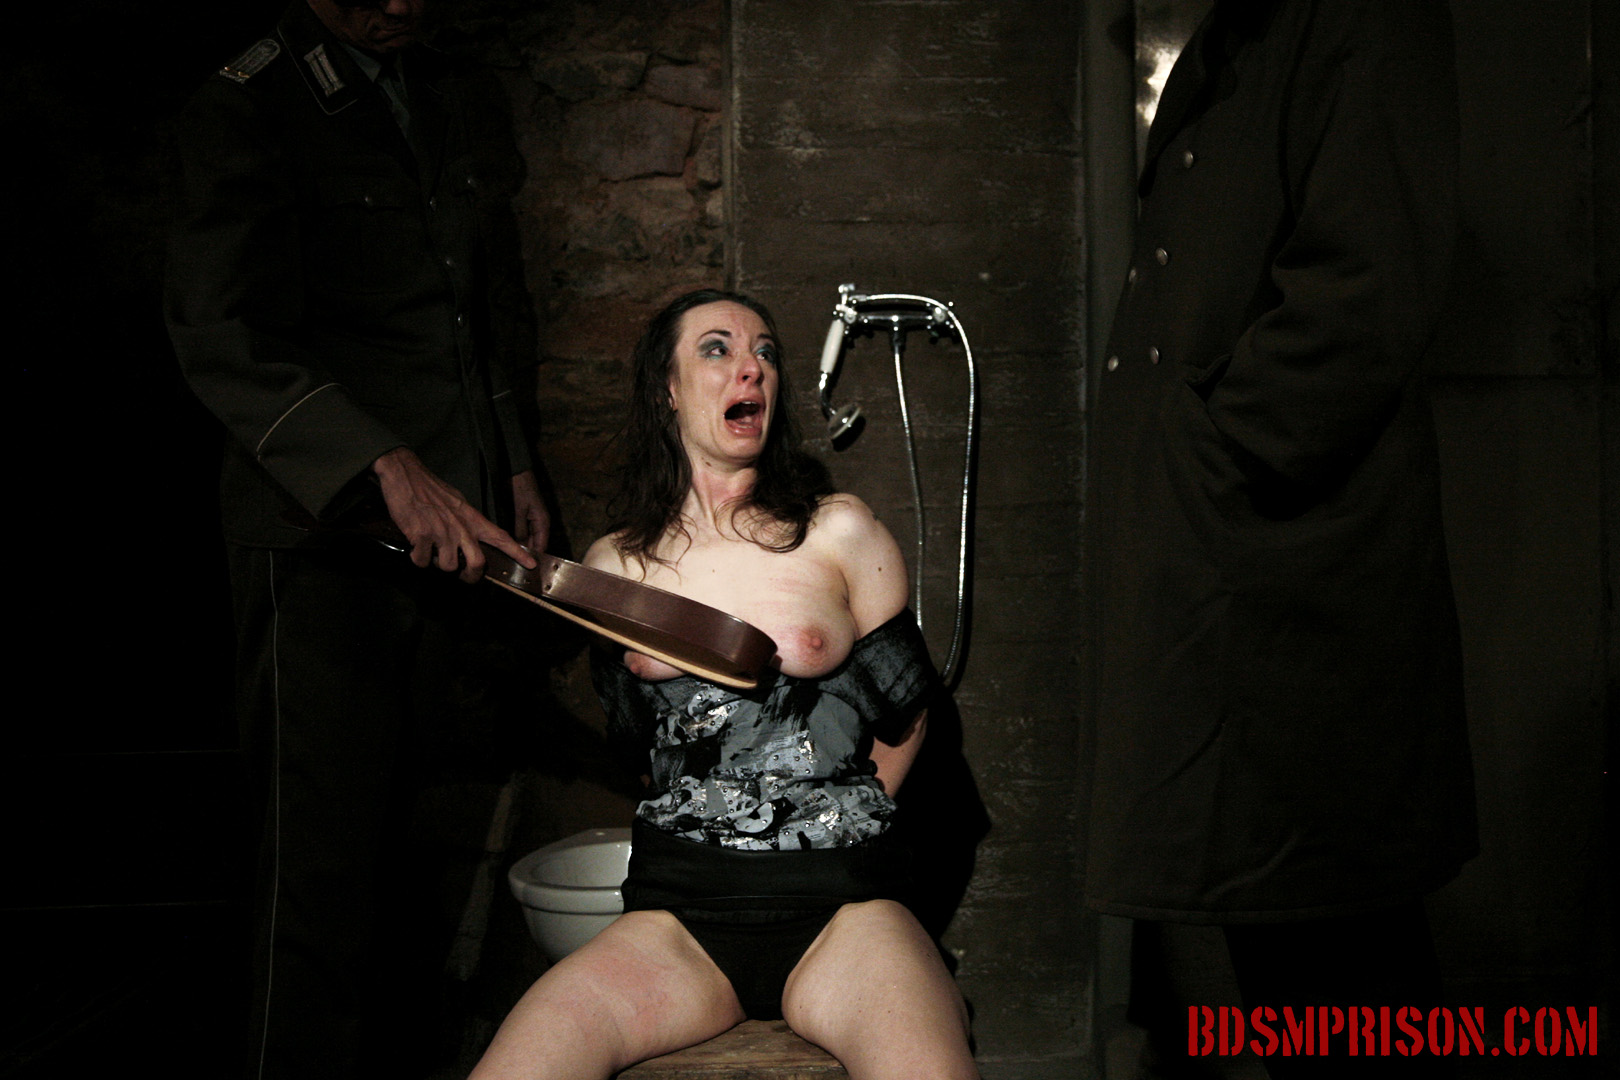 Nadja endures bondage leather belt. Nadja must endure two BDSM Prison Masters, domination, humiliation, fingering, spanking, smacking, whipping, bondage, breast, cunt and nipple molested with a leather belt. She pleads for mercy, crying from all the pain. Obviously her Masters don't care and continue with her sentence.